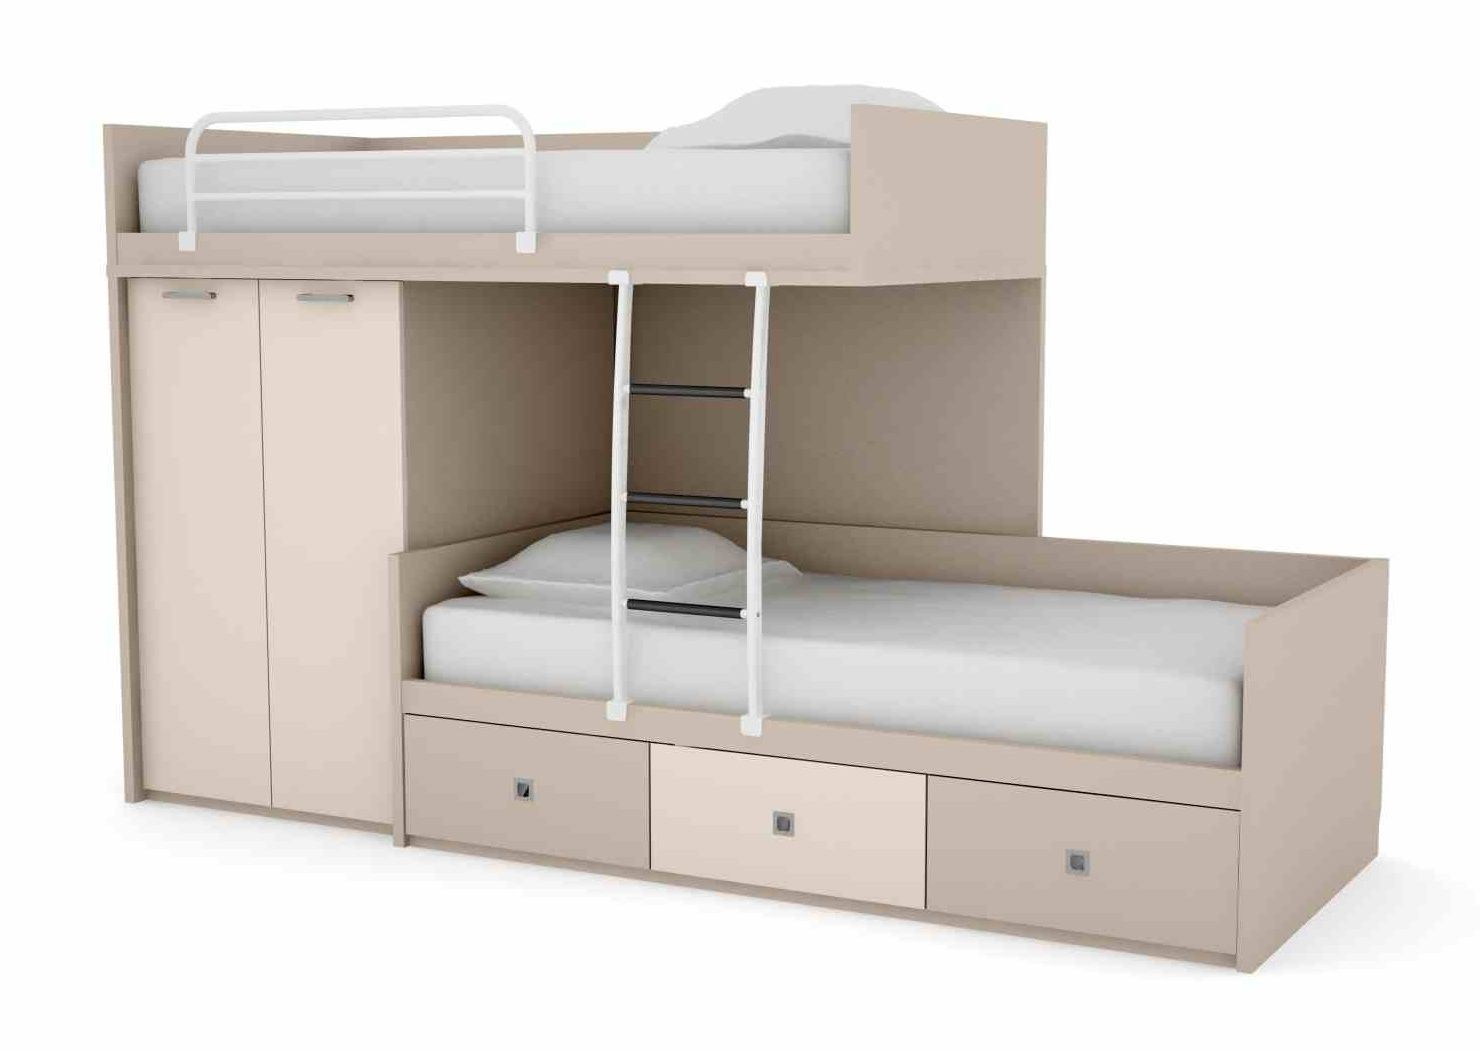 Space Saving Bunk Beds For More Awesome Bunk Bed Ideas Take A Look